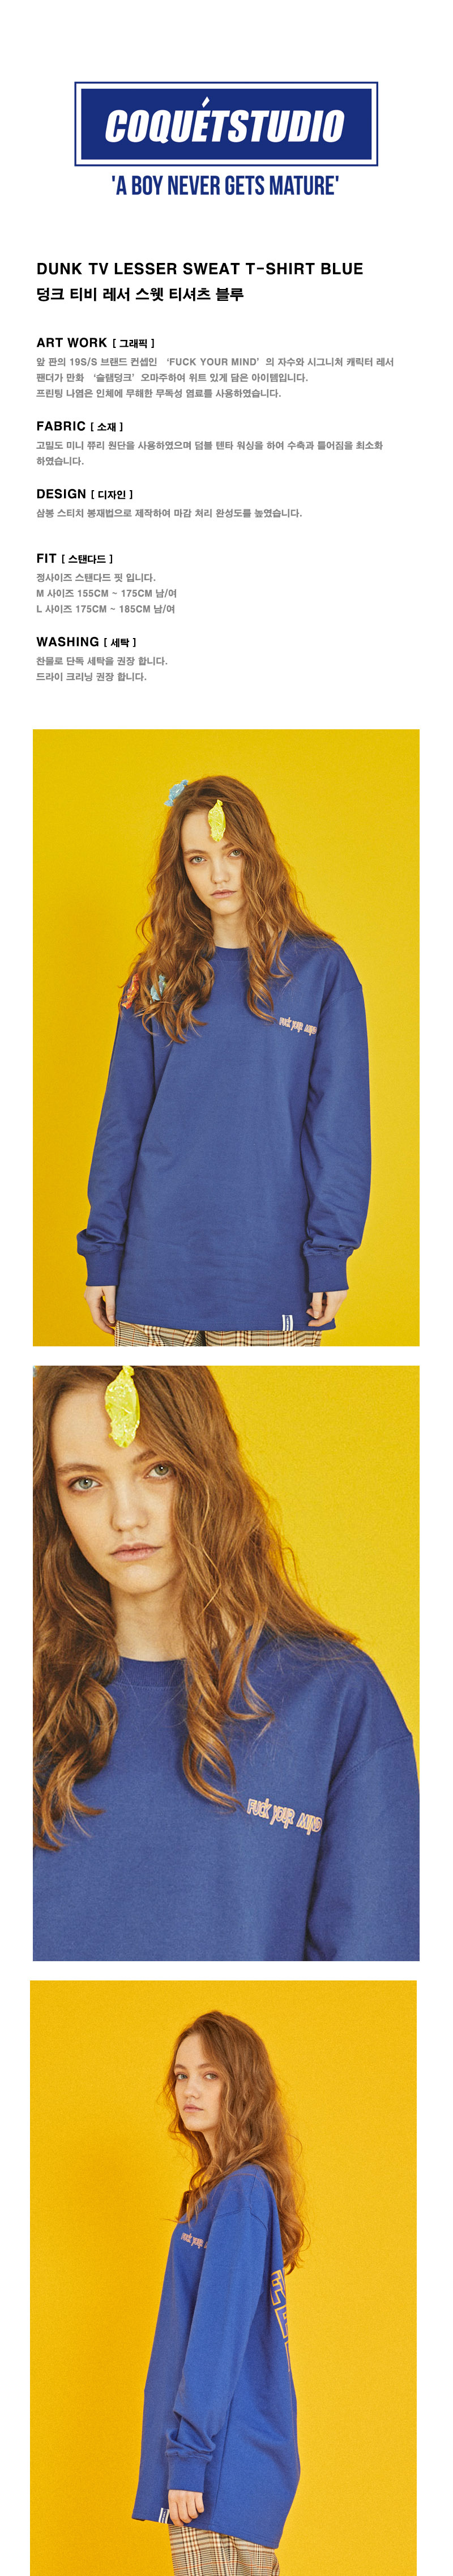 코케트 스튜디오(COQUET STUDIO) DUNK TV LESSER SWEATSHIRT [ BLUE ]